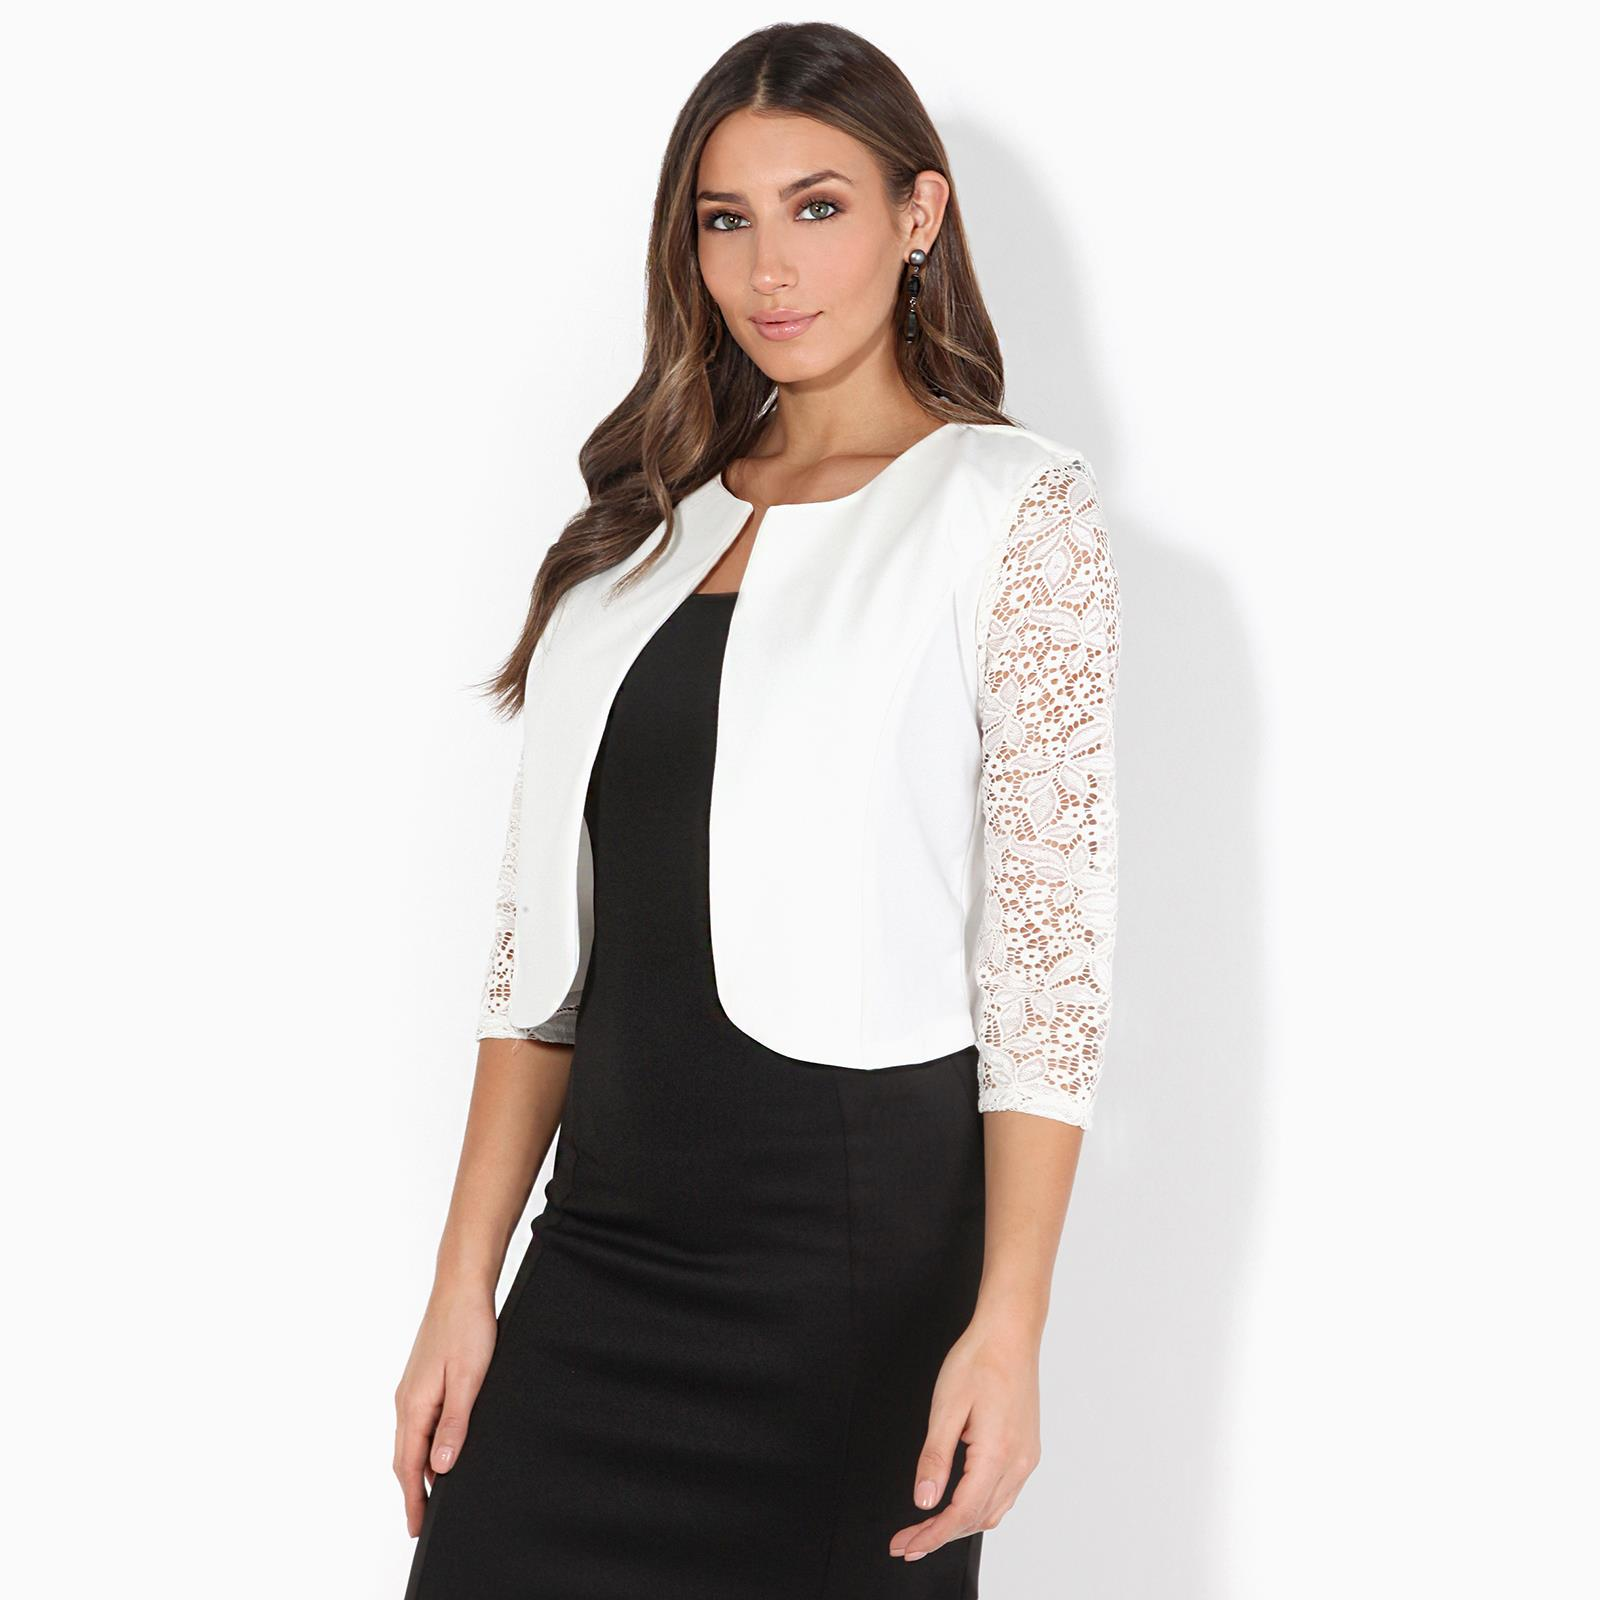 Womens-Ladies-Bolero-Shrug-Lace-Top-Short-Sleeve-Cardigan-Cropped-Evening-Jacket thumbnail 8